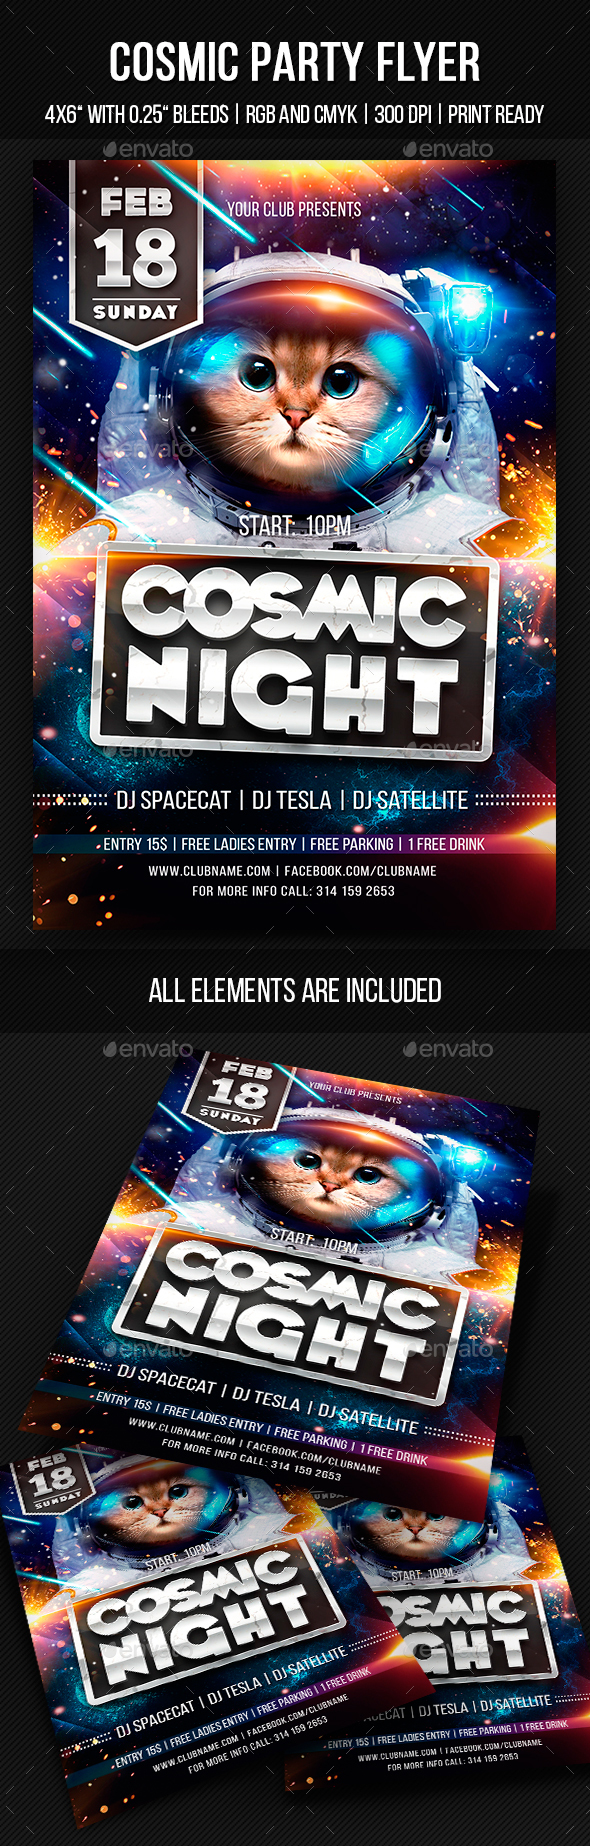 Cosmic Party Flyer - Clubs & Parties Events